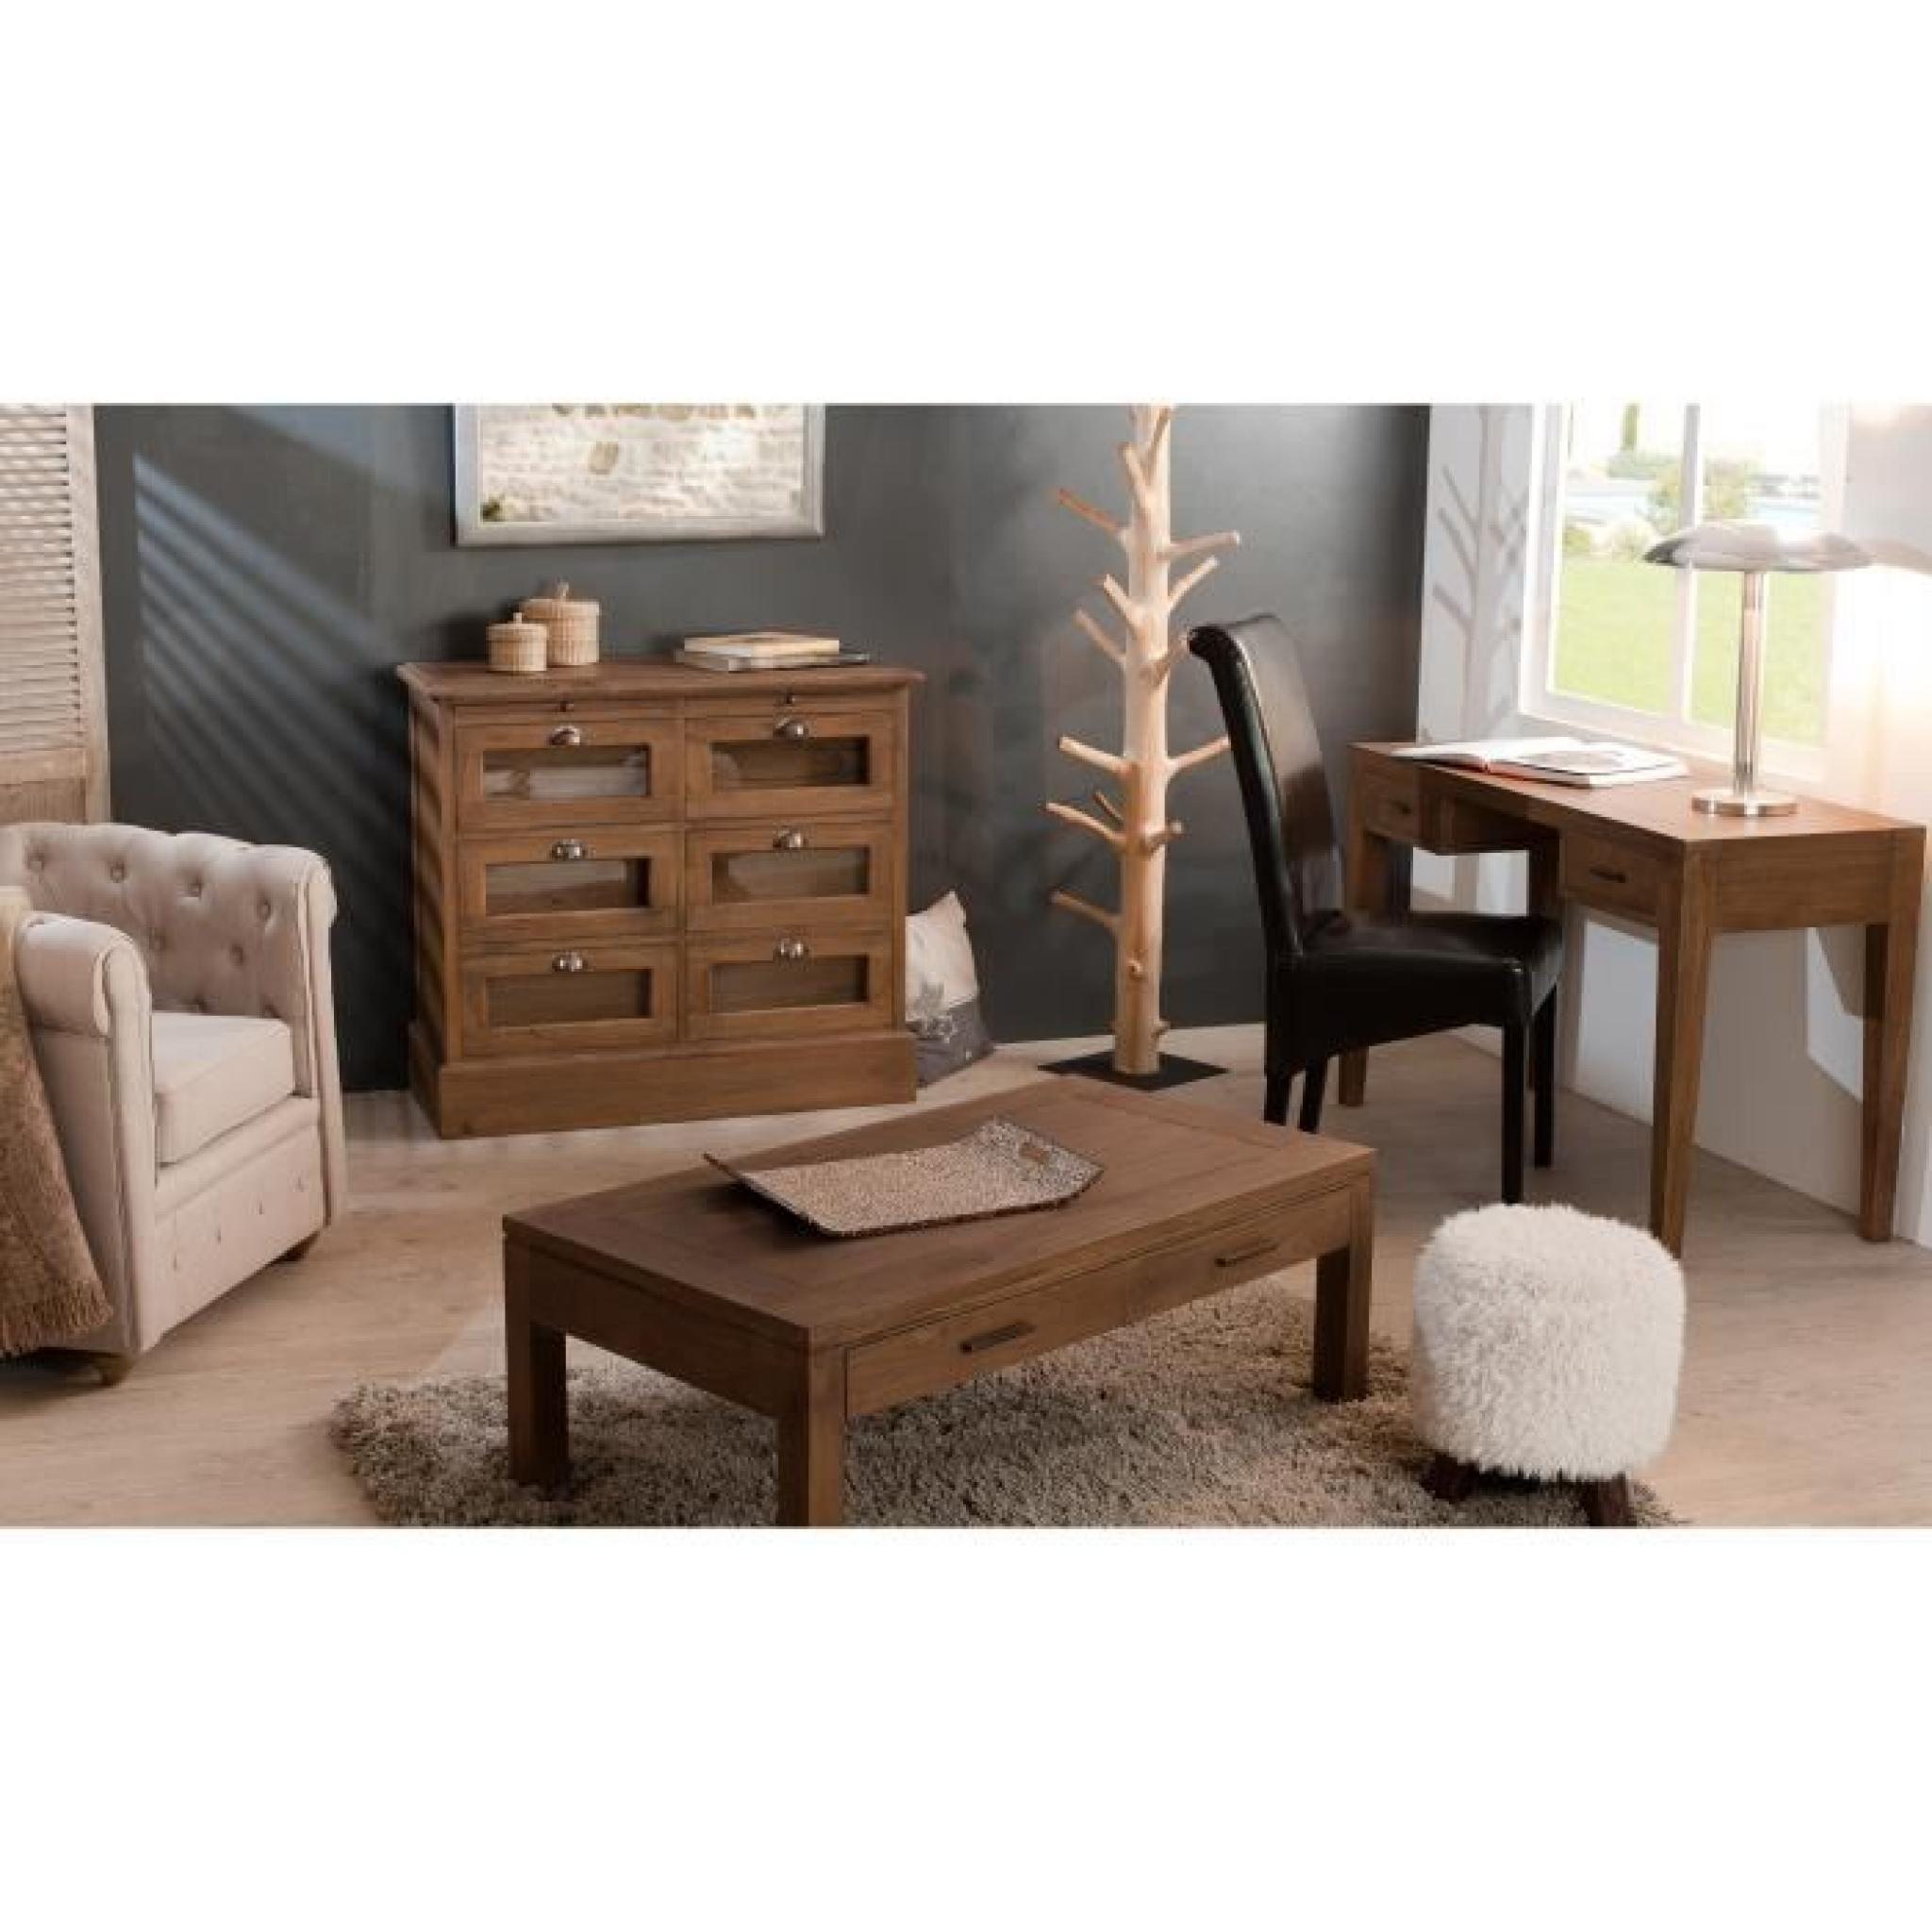 malaga grainetier 100 cm mindi et contreplaqu achat vente buffet pas cher couleur et. Black Bedroom Furniture Sets. Home Design Ideas